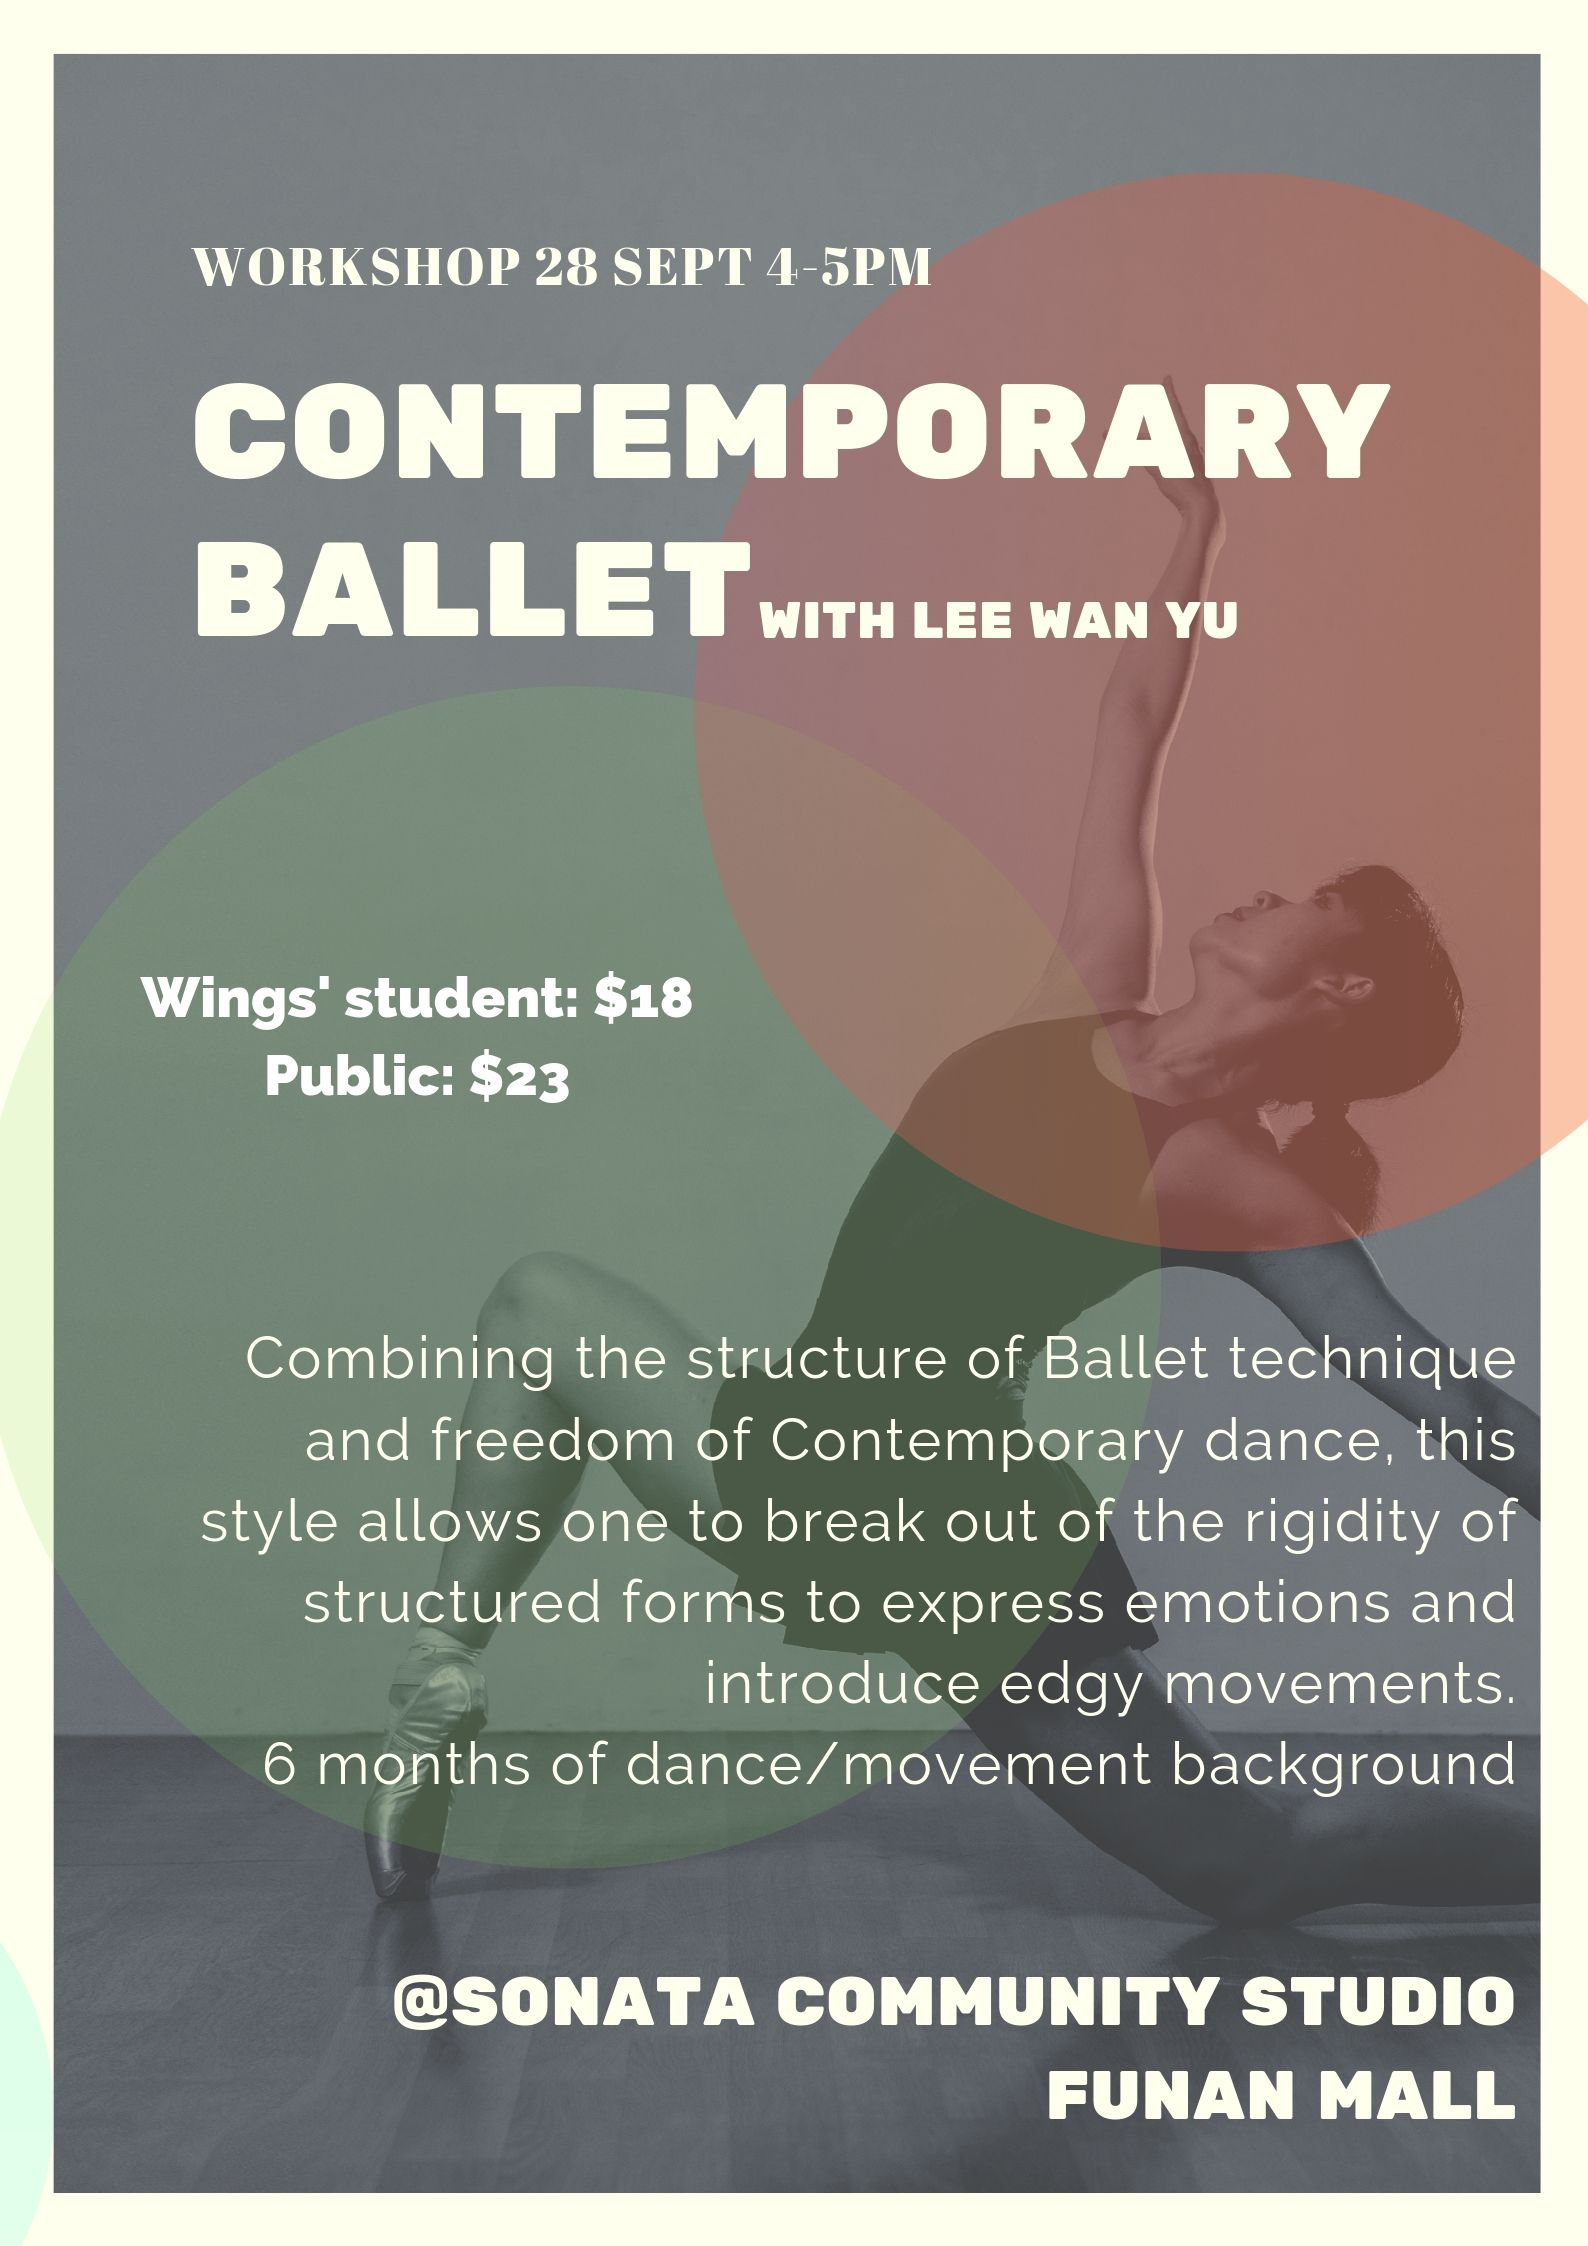 Contemporary Ballet Wings To Wings Dance Classes Singapore Workshop Funan September